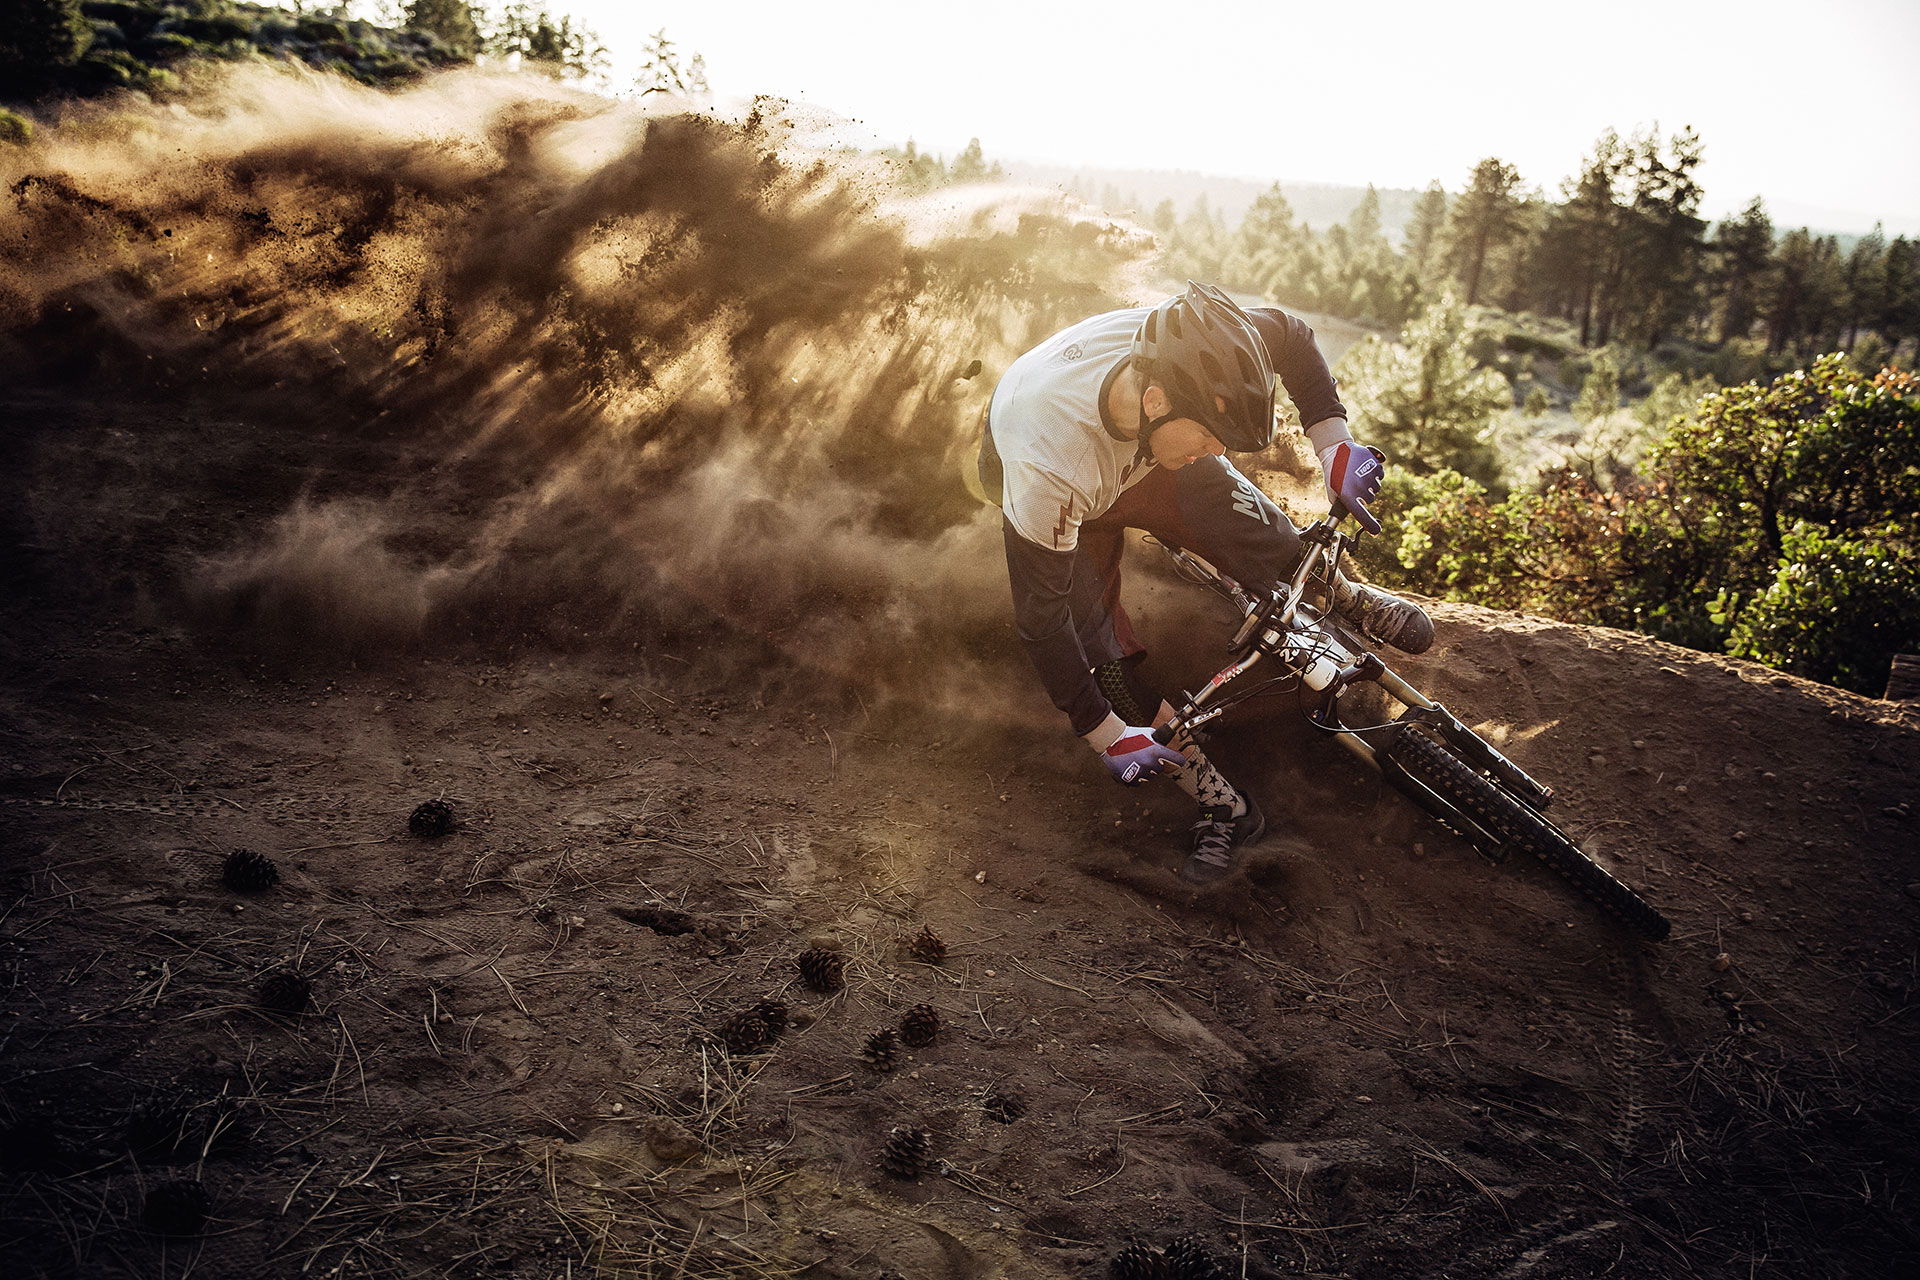 mountainbike freeride fotograf lifestyle shooting michael mueller deutschland